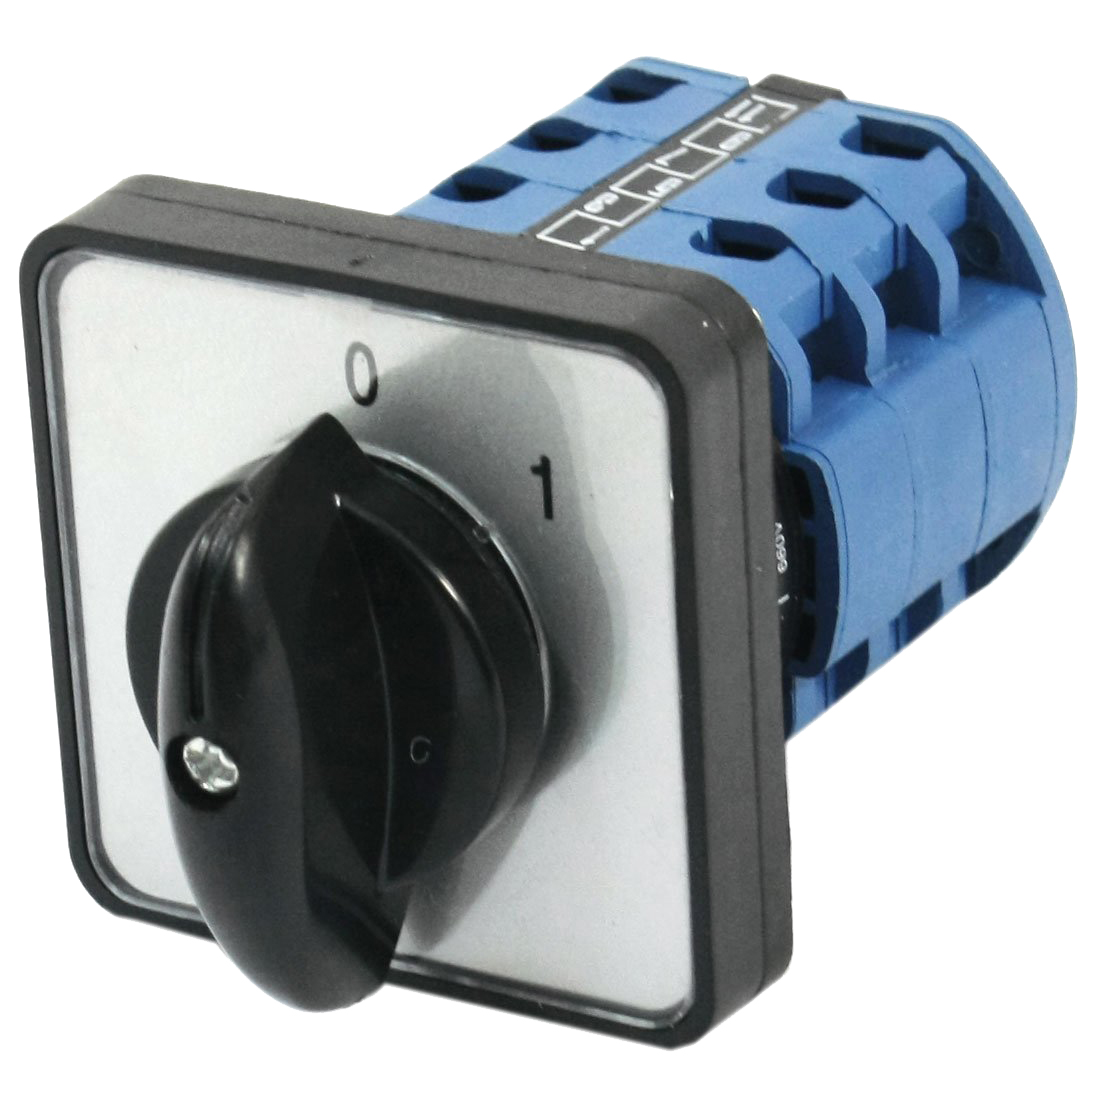 Square Panel Mounting 2-Position 3-Phase Rotary Changeover Switch CA10 660v ui 10a ith 8 terminals rotary cam universal changeover combination switch